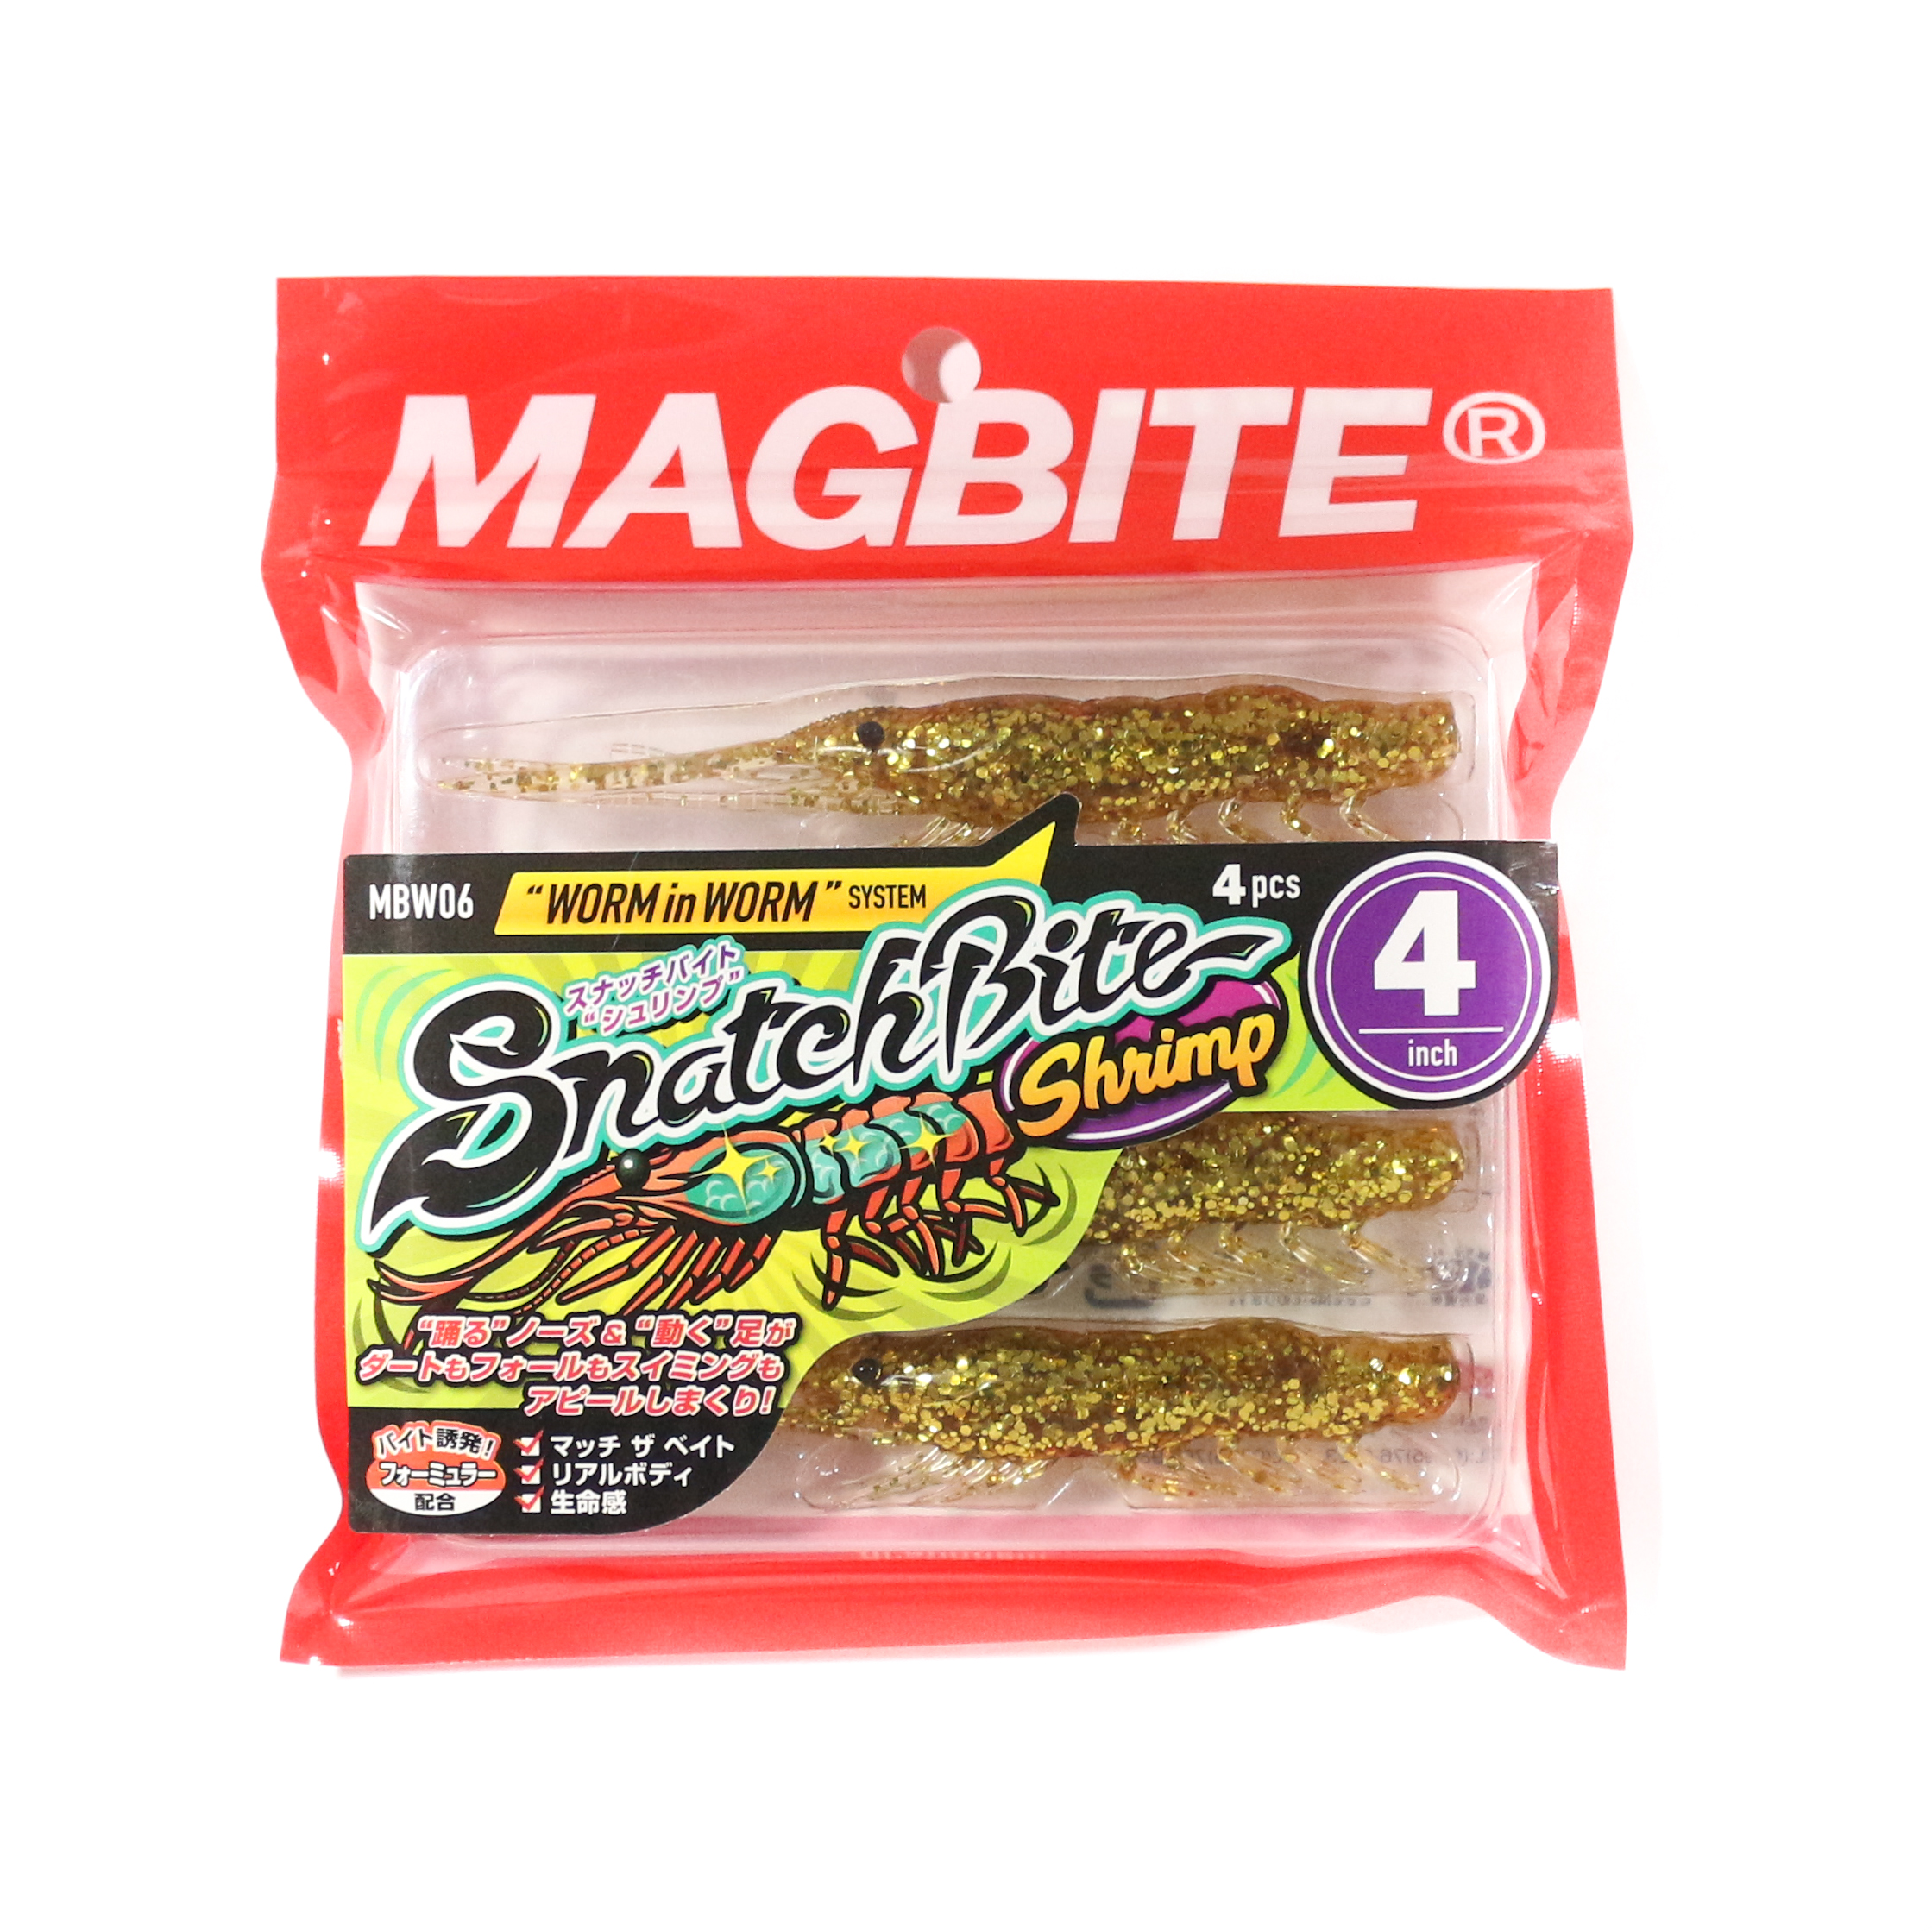 Harimitsu Mag Bite Snatch Shrimp 4 Inch 4 per pack 02 (5075)